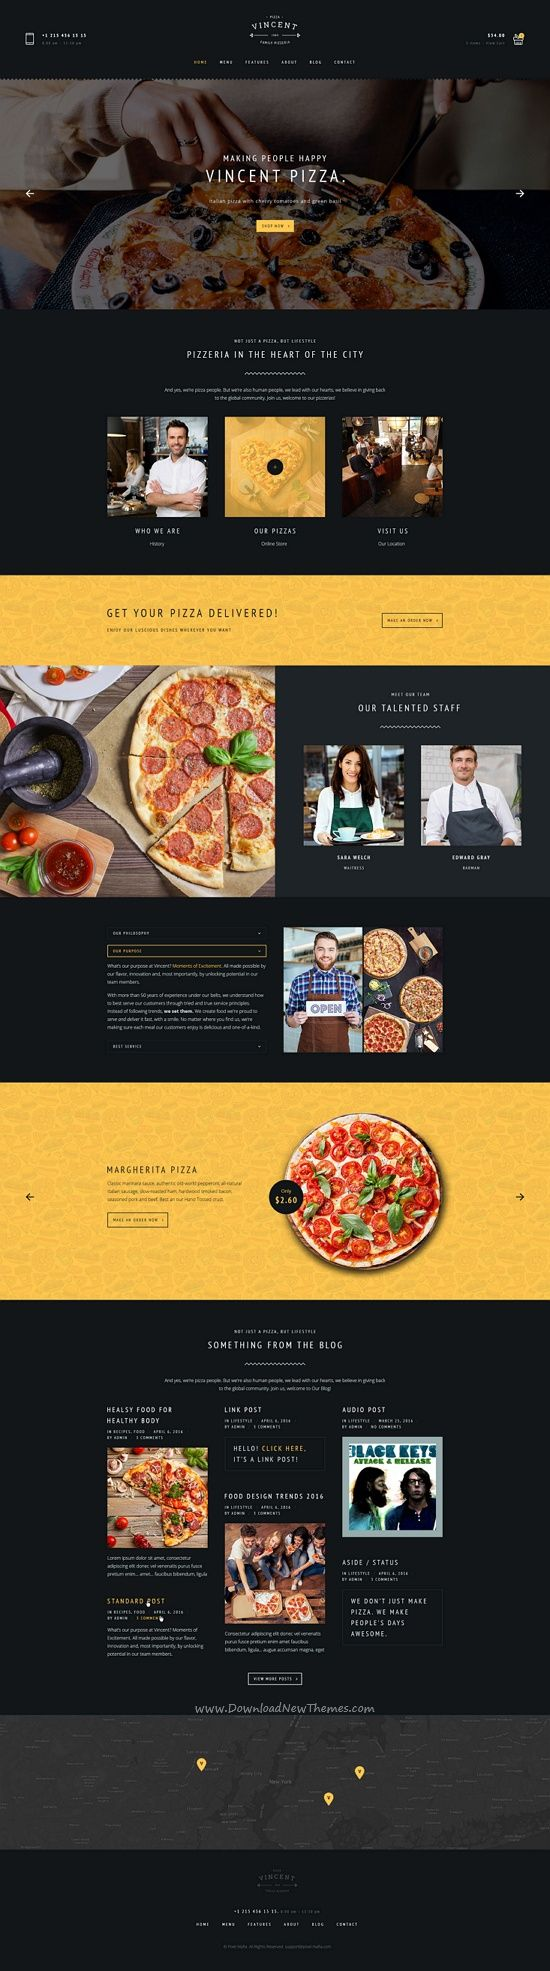 vincet is beautifully design premium #PSD template for #webdesign #pizza, restaurant, #cafe or food order online service websites with 6 homepage layouts and 25 organized PSD pages download now➩ https://themeforest.net/item/vincent-restaurant-pizza-cafe-and-online-delivering/19220268?ref=Datasata